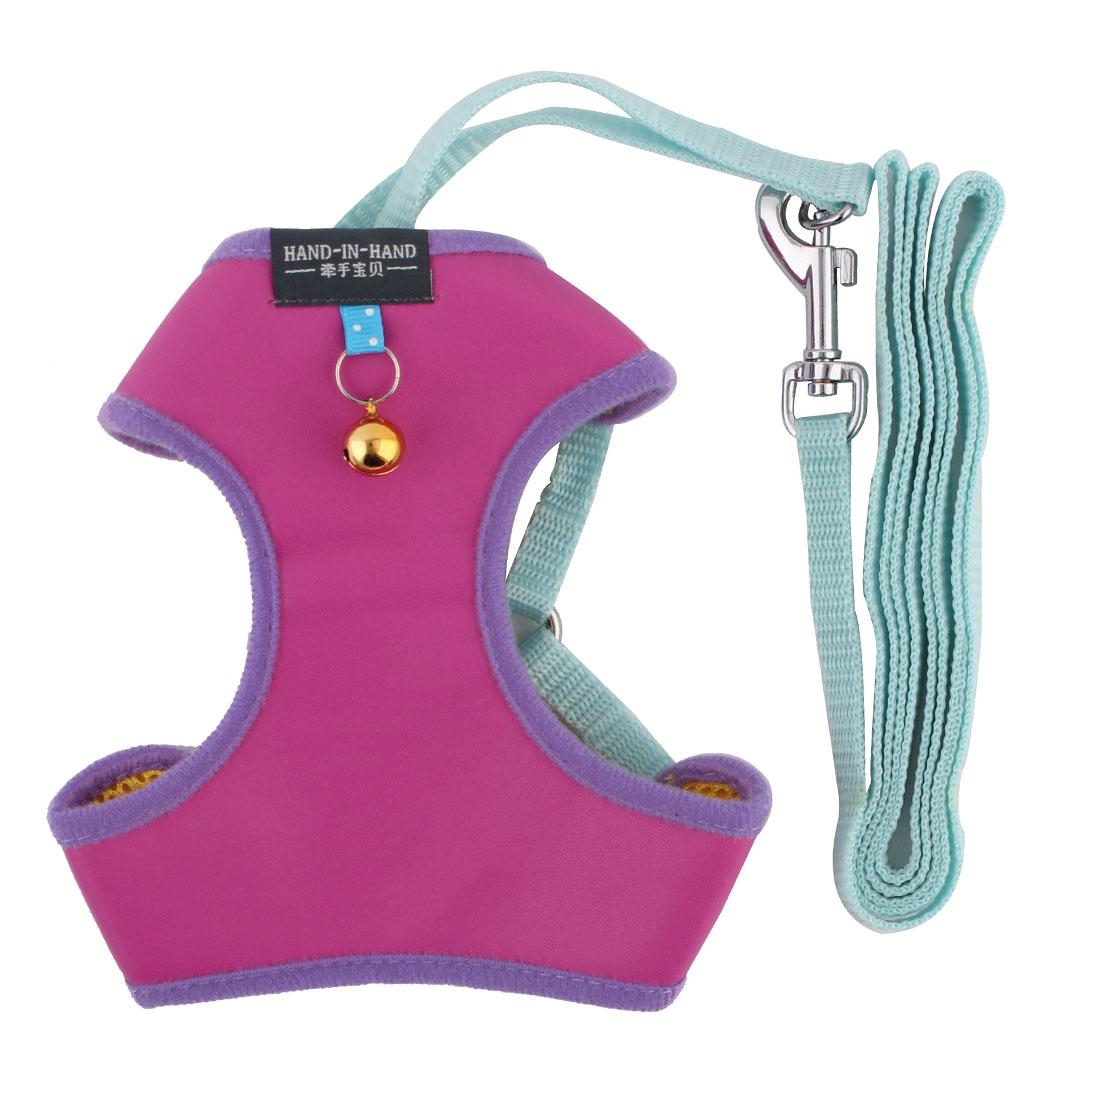 Dog Walking Supplies Faux Leather Adjustable Harness Vest Leash Fuchsia Size M